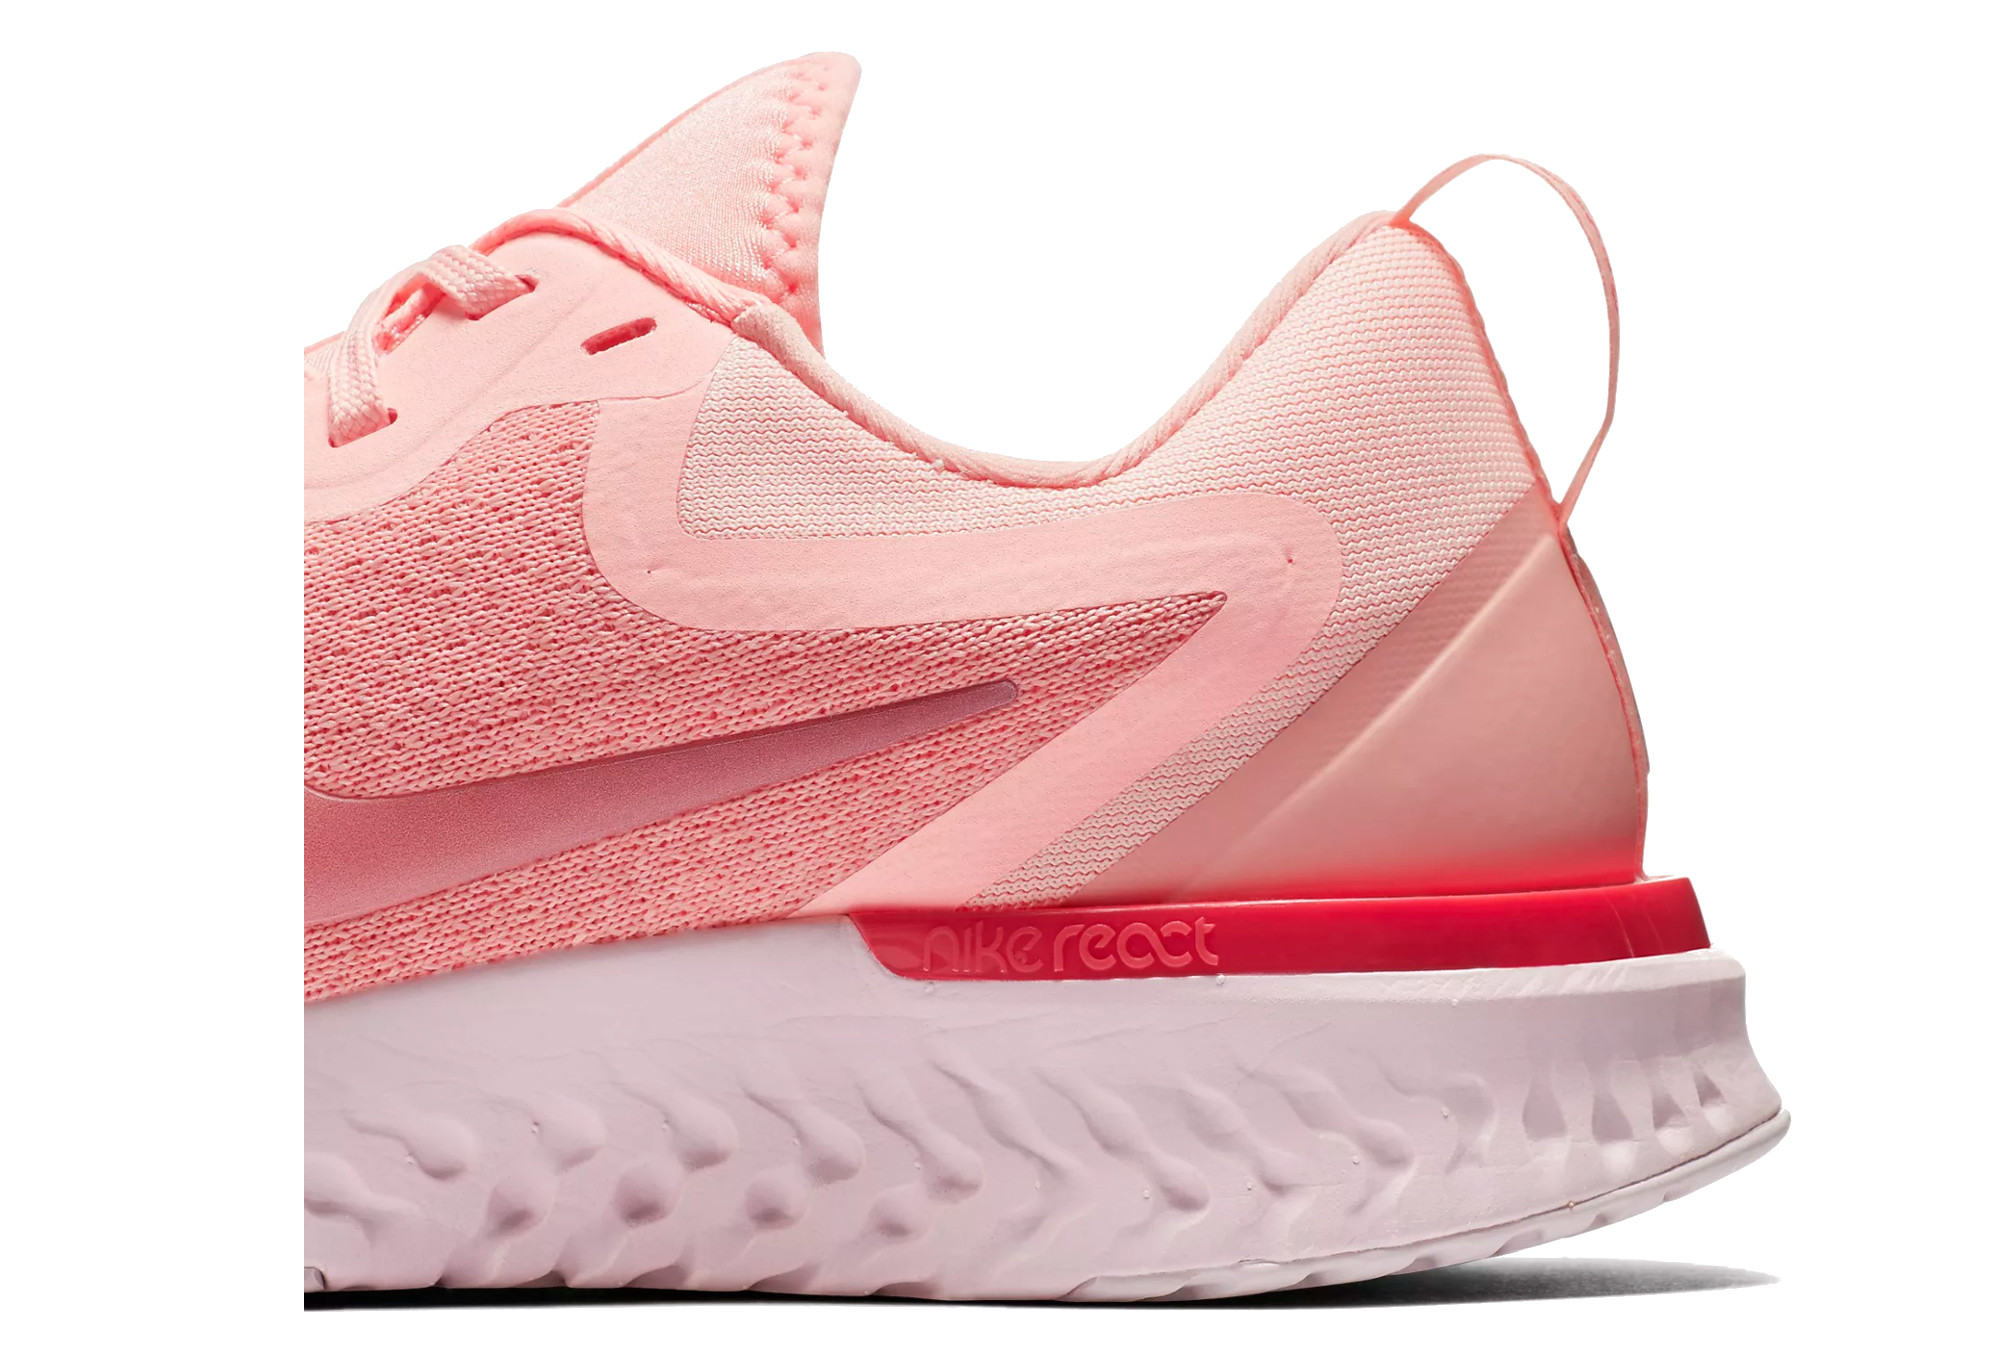 low priced 9a826 43357 Nike Shoes Odyssey React Pink Women